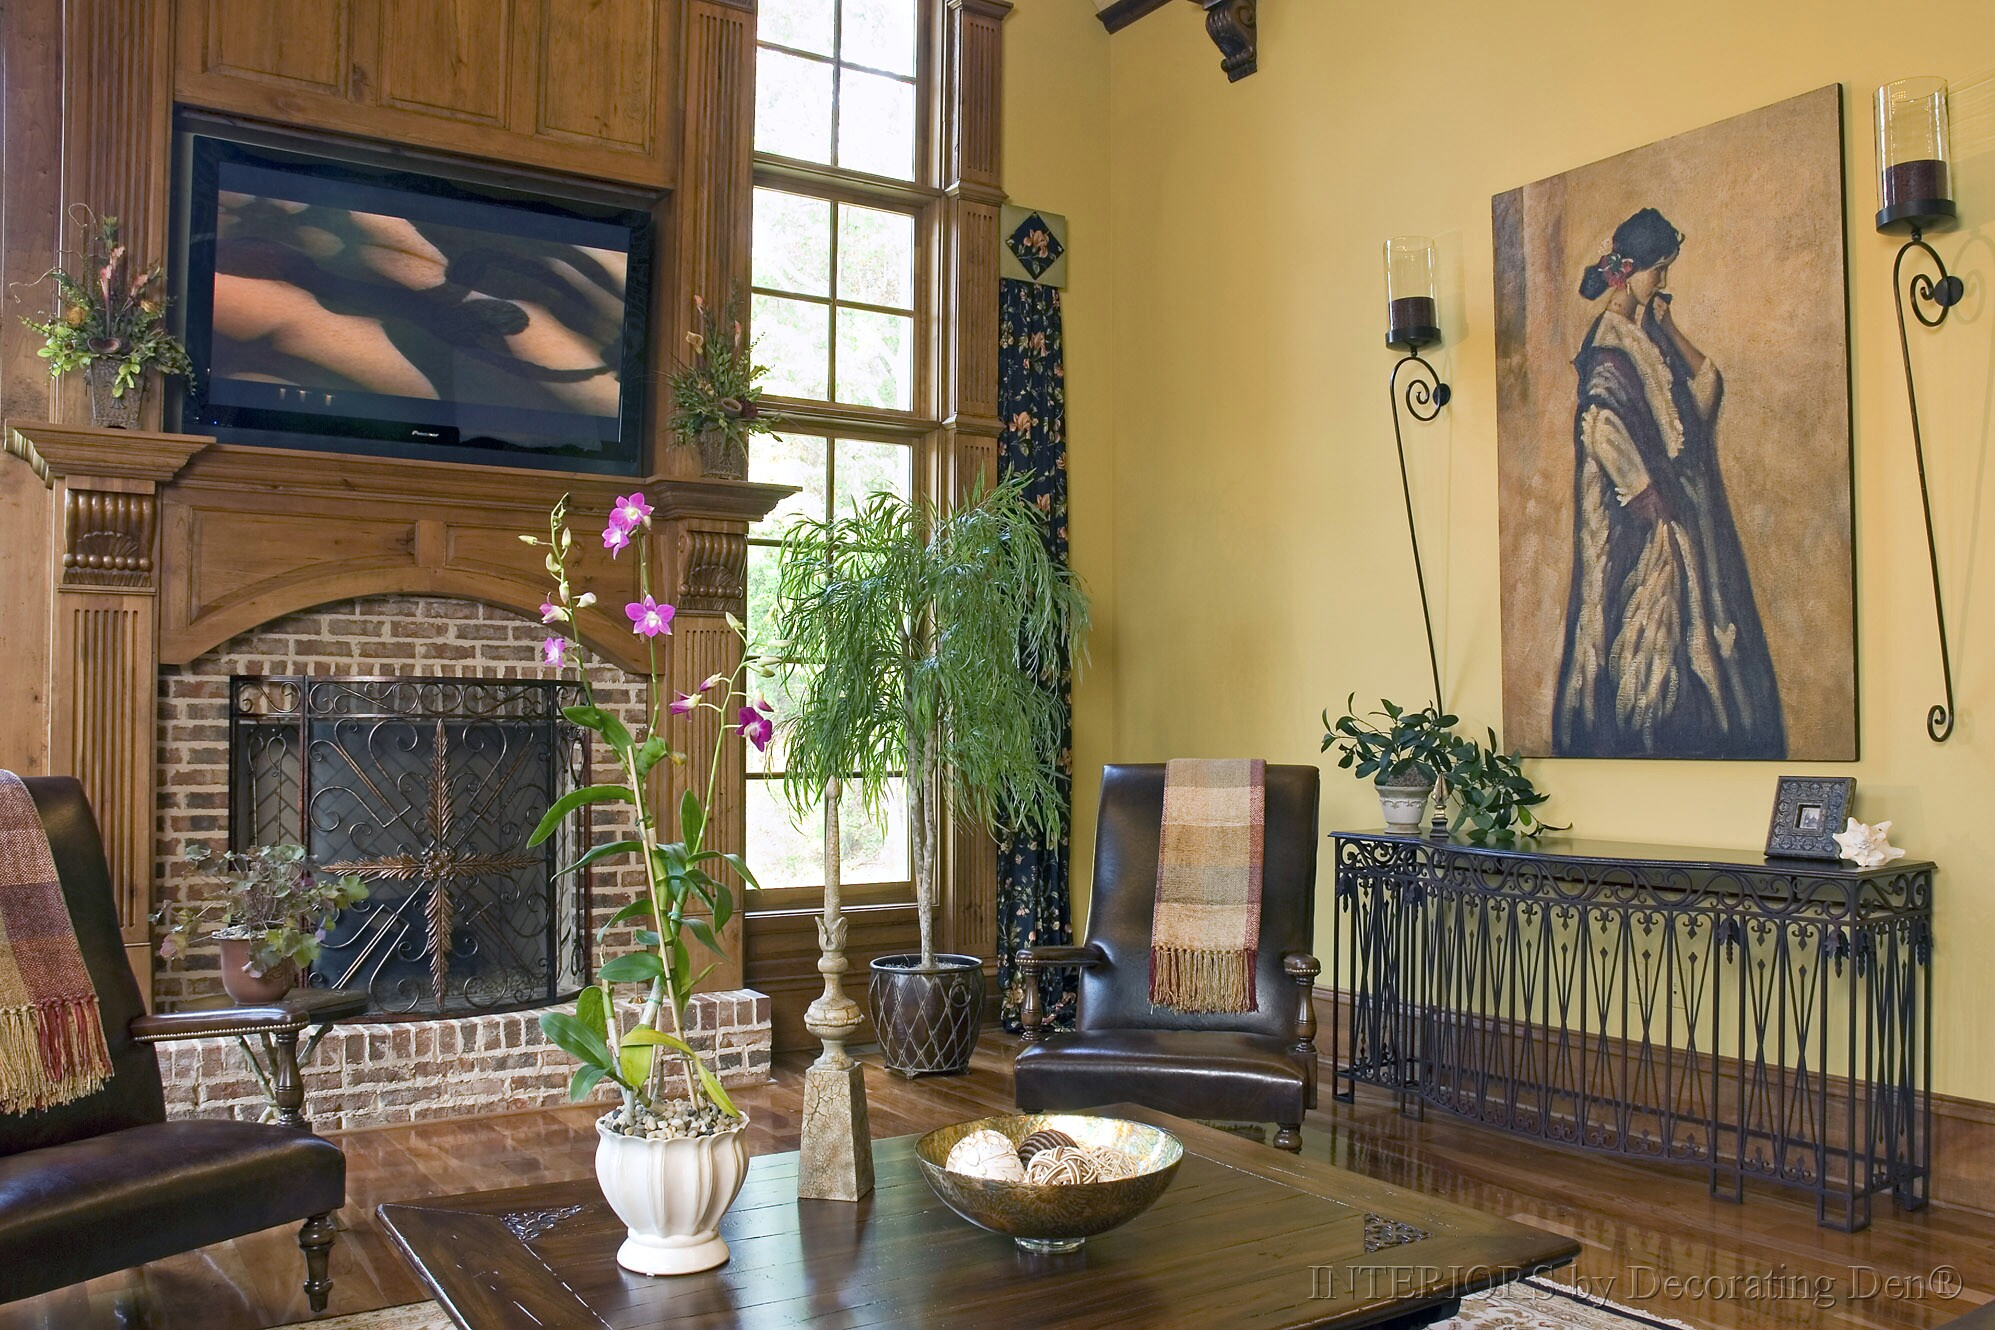 Big Artwork For Walls Tips And Tricks For Decorating With Tall And Low Ceilings